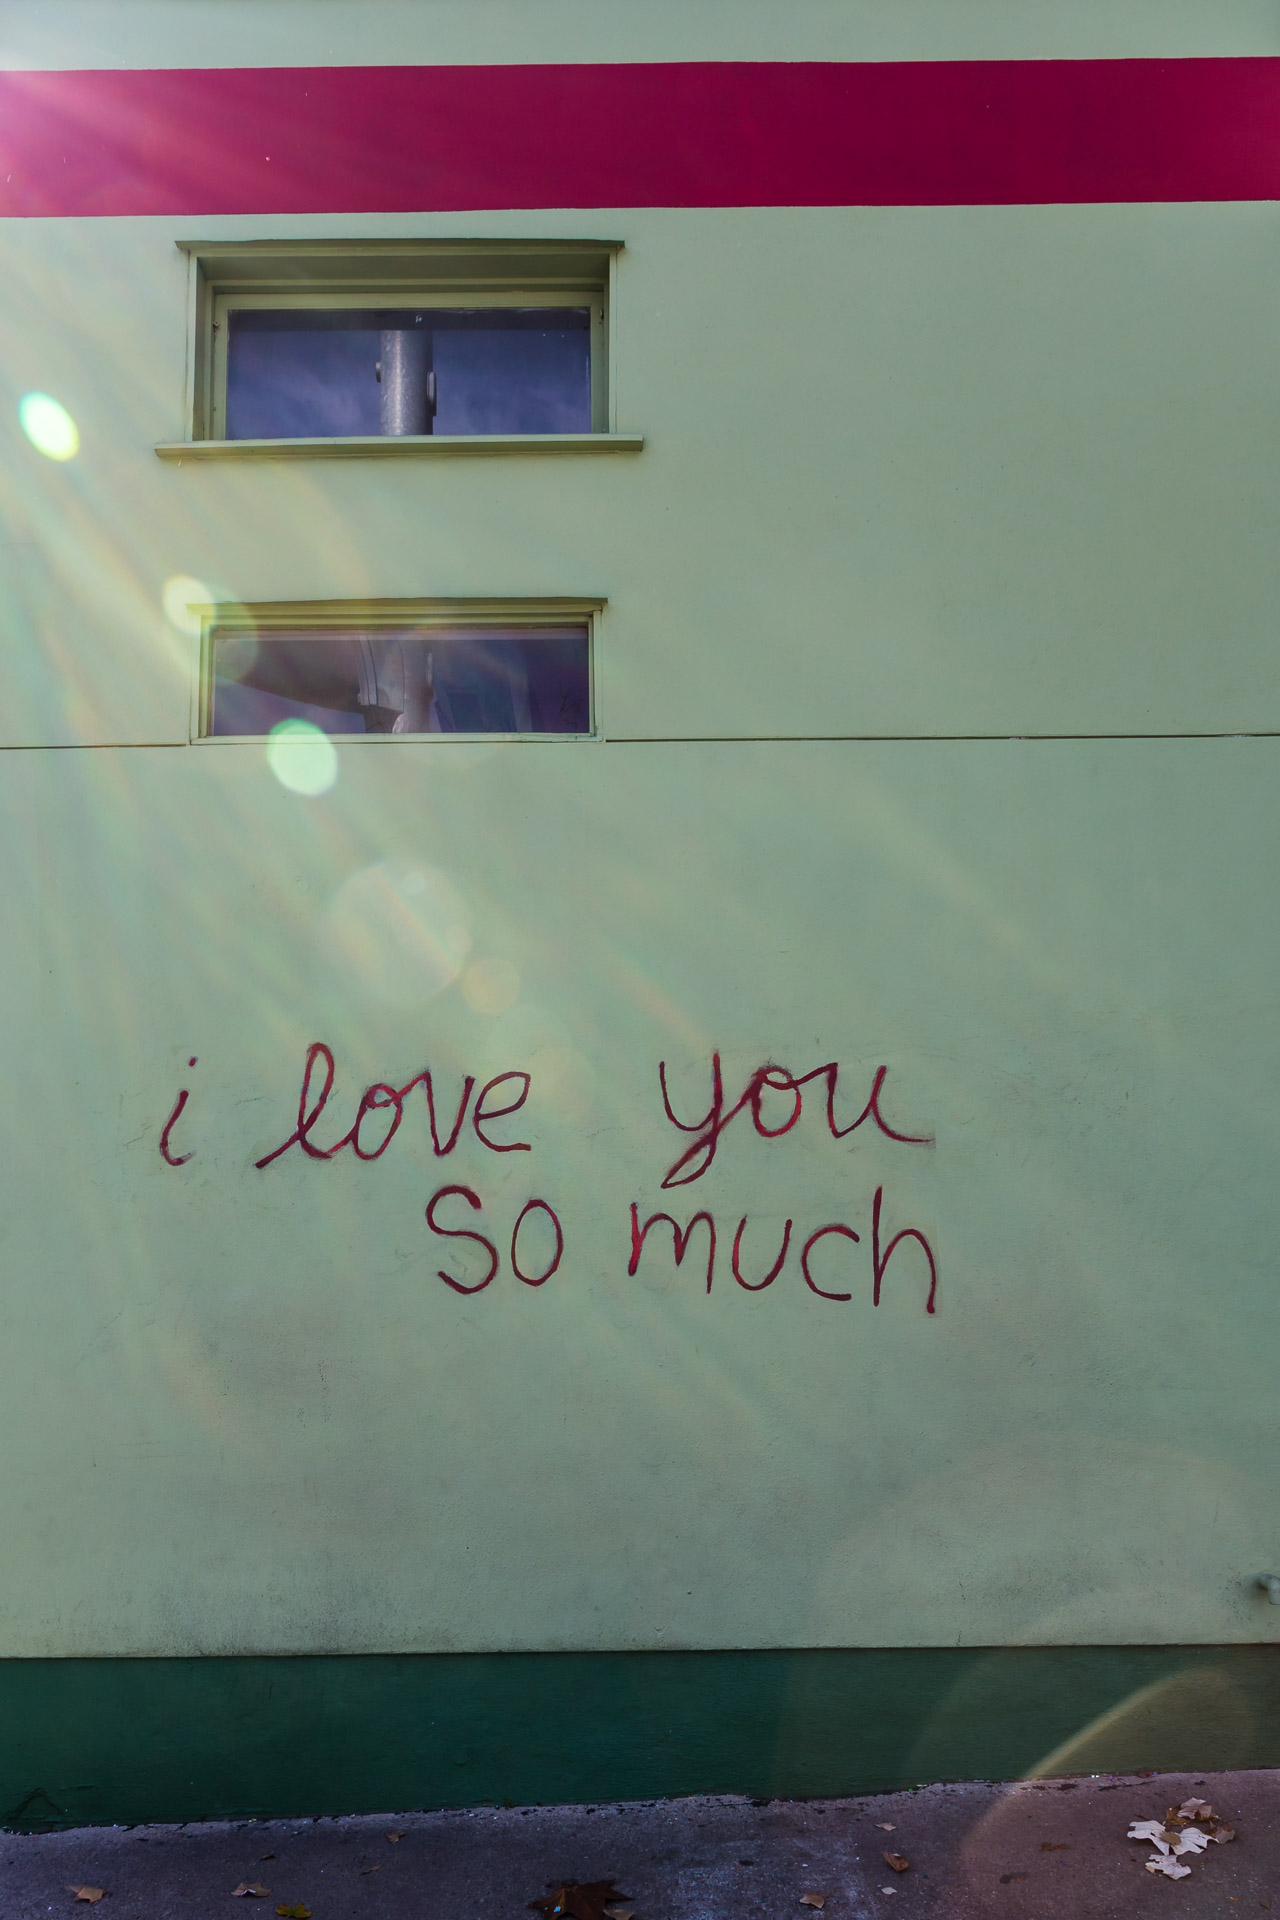 Austin Street Art (love you)